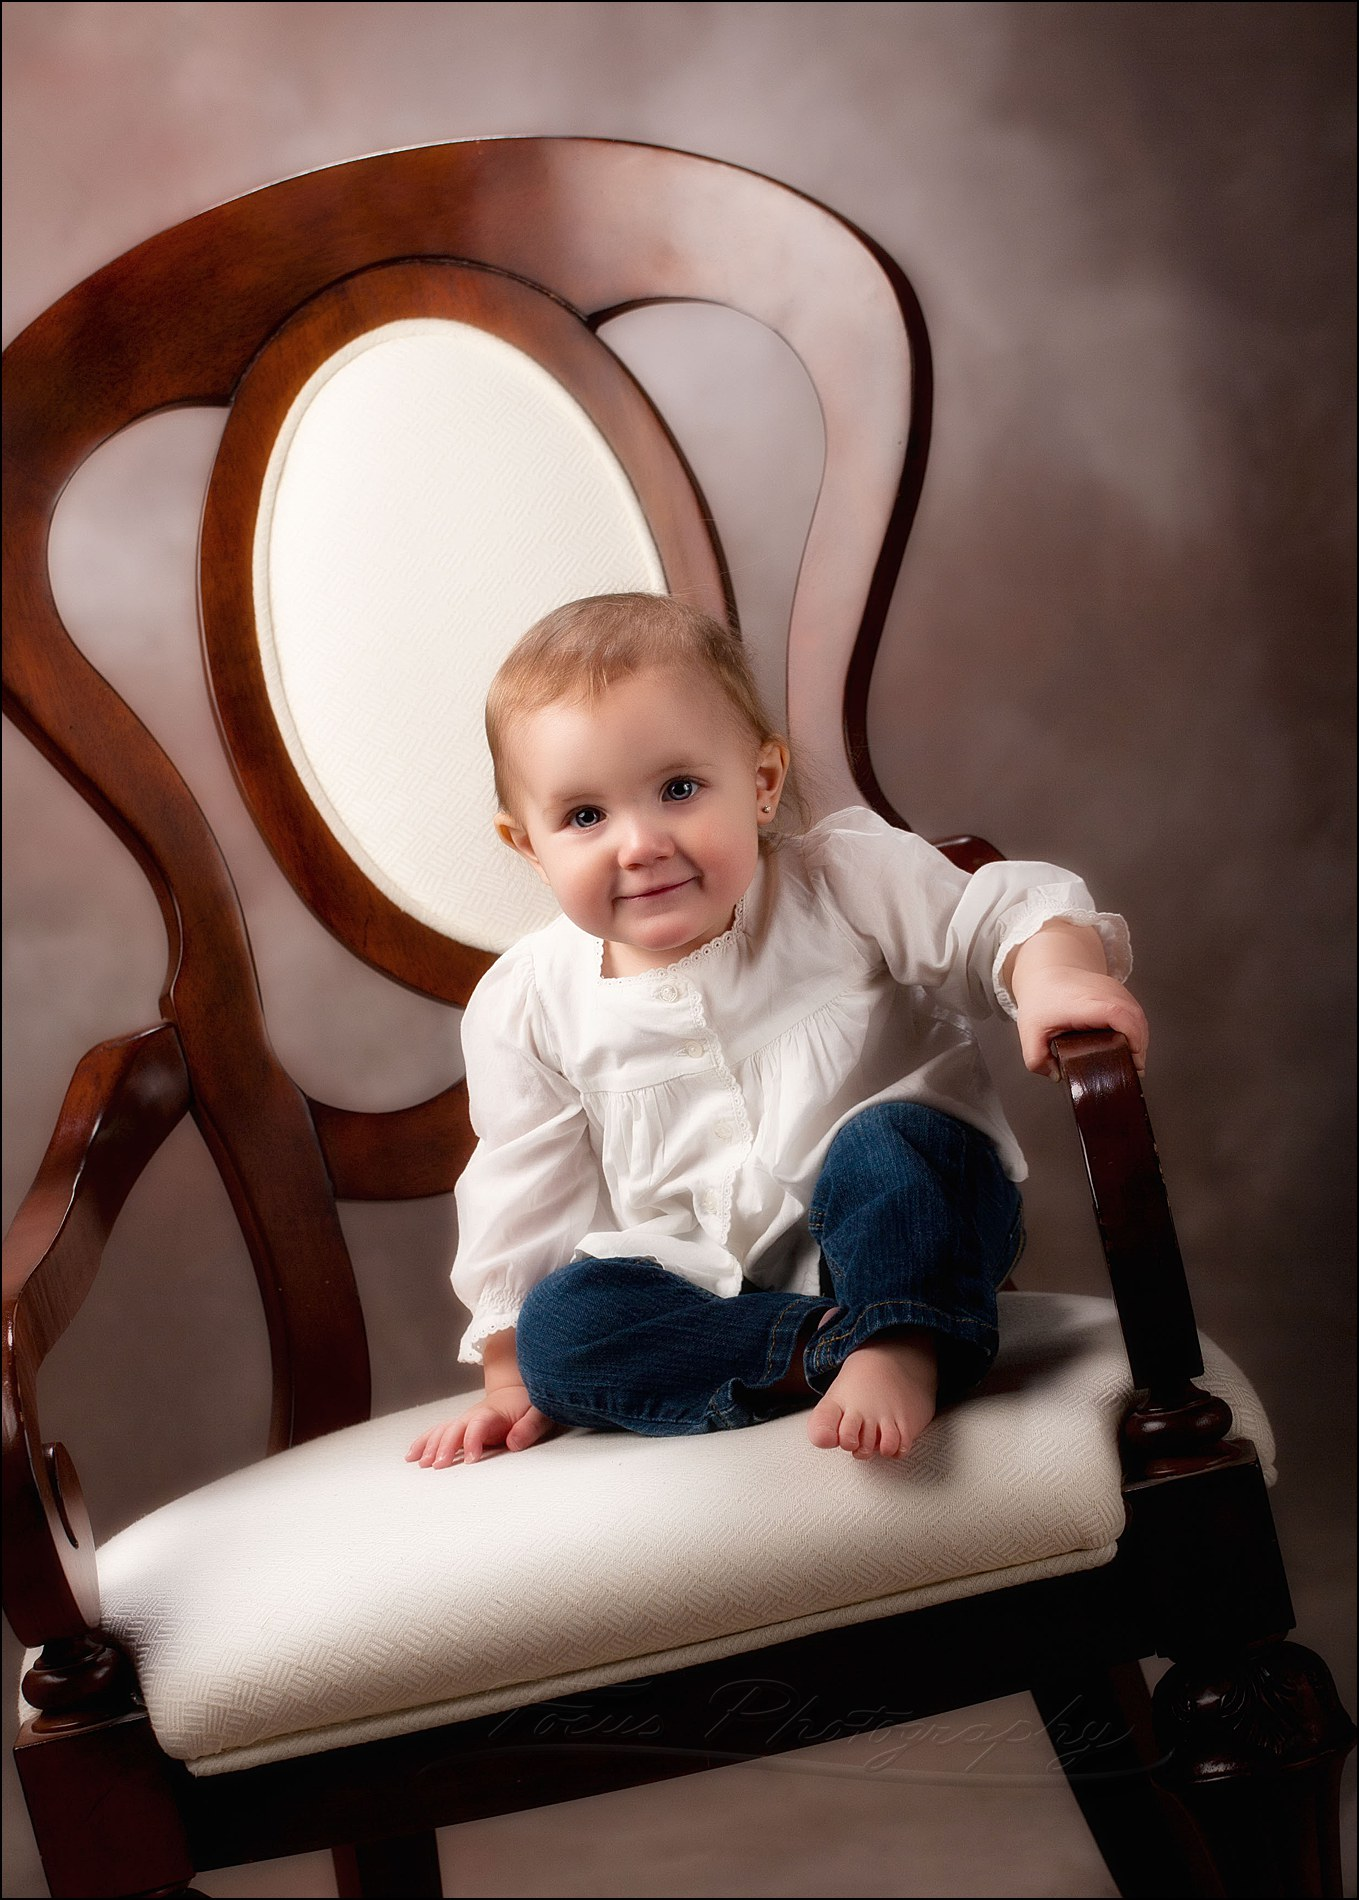 1 year old sits up in chair on own